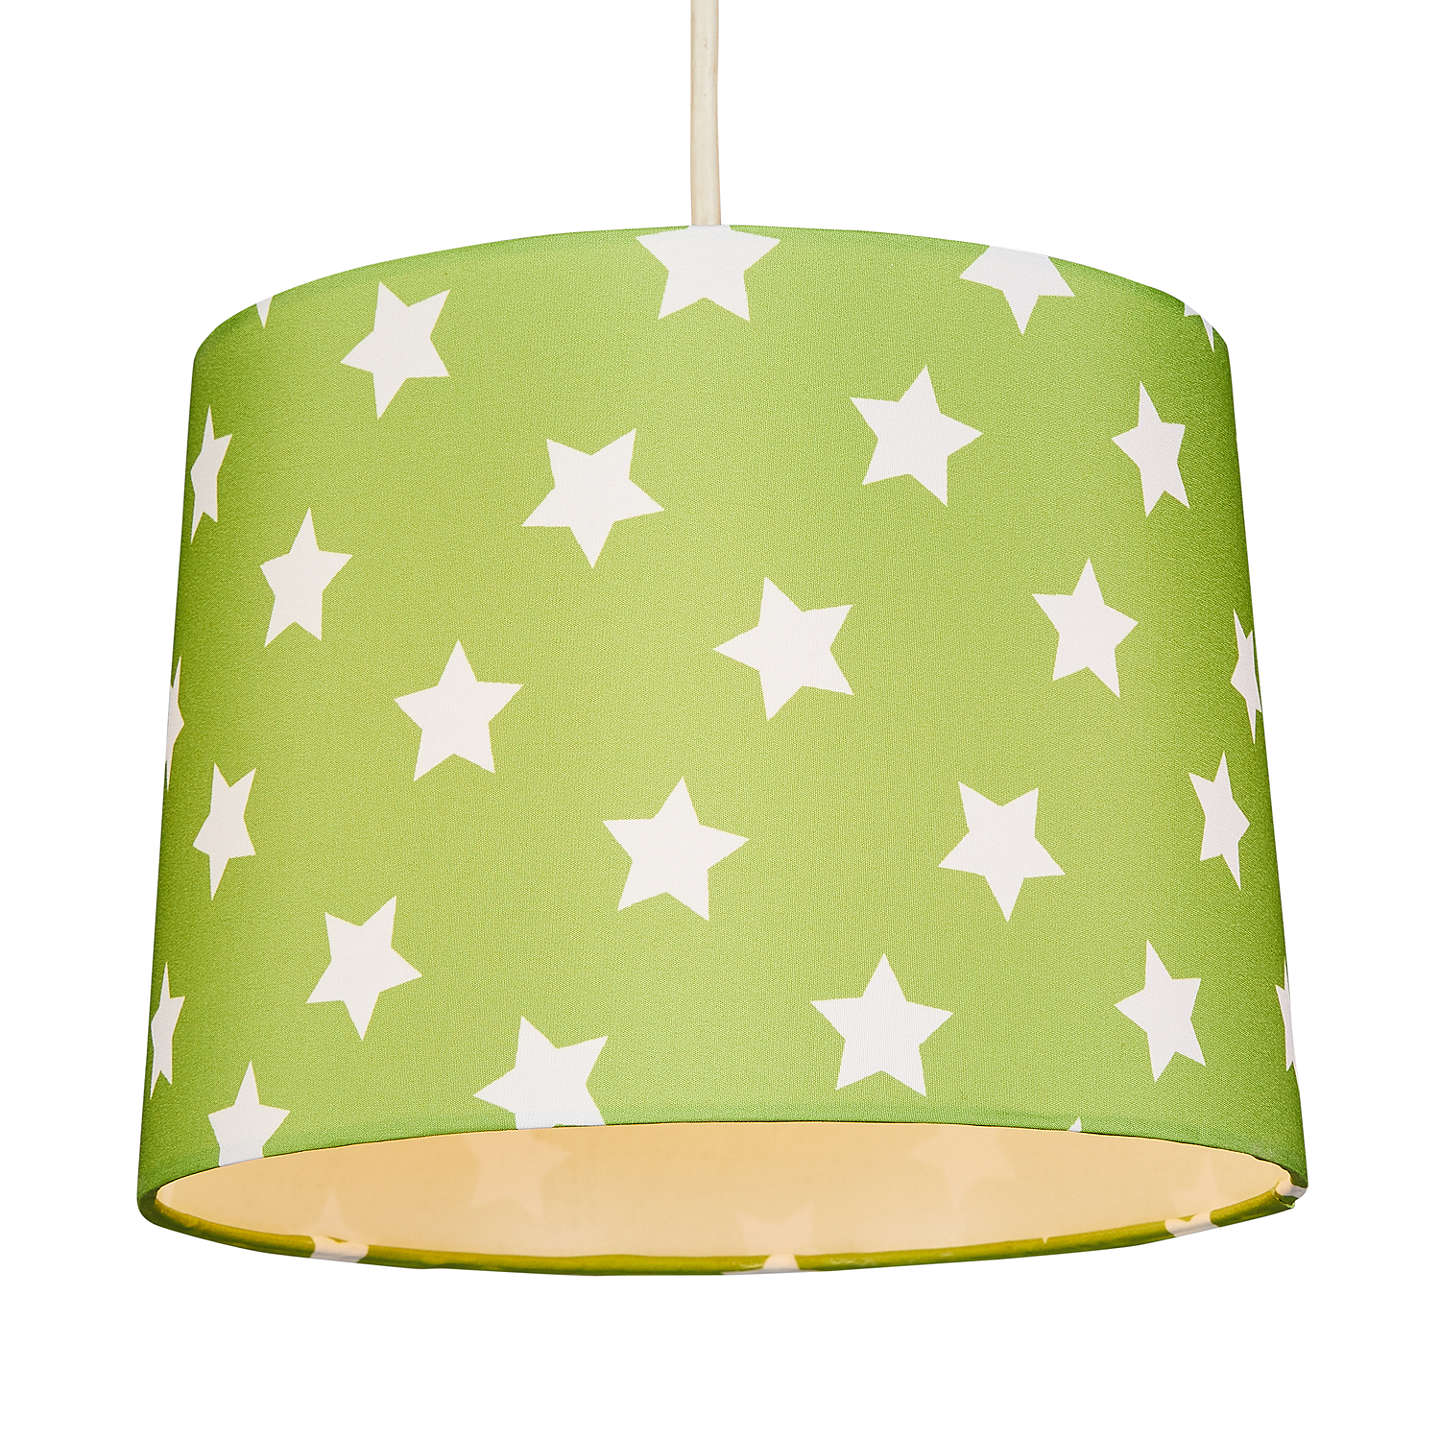 Little home at john lewis star lampshade green at john lewis buylittle home at john lewis star lampshade green online at johnlewis mozeypictures